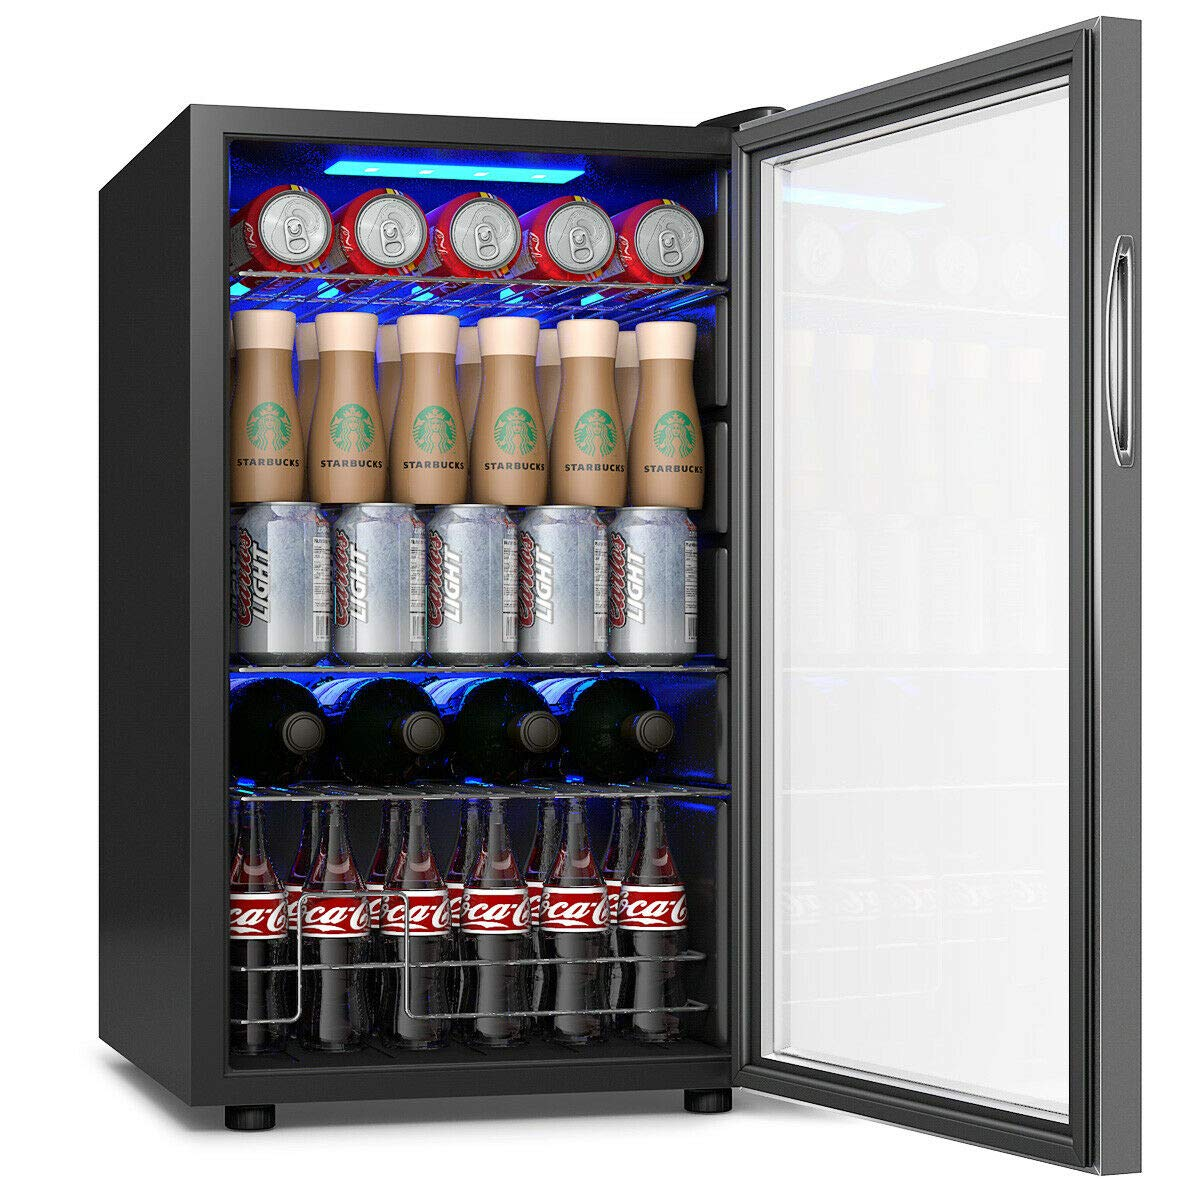 COSTWAY Beverage Refrigerator and Cooler, 76 Can Mini Fridge with Glass Door for Soda Beer or Wine Small Drink Dispenser Machine for Office or Bar (17''x 17.5''x29'')